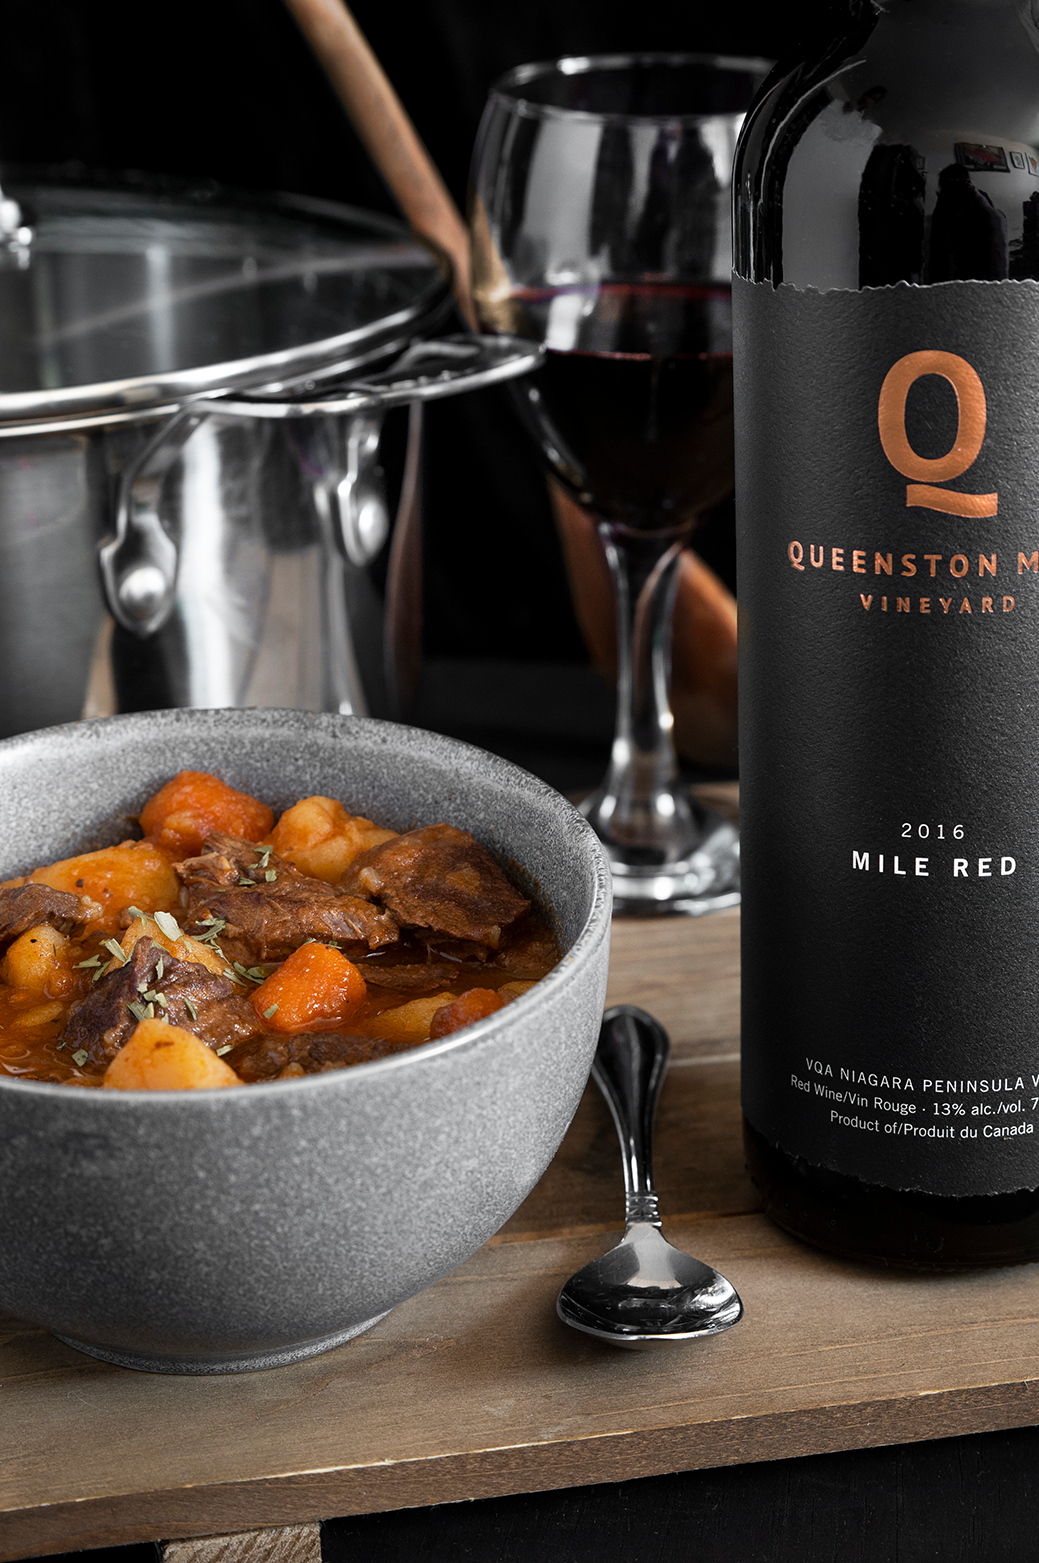 queenston mile vineyard mile red paired with a braised beef stew